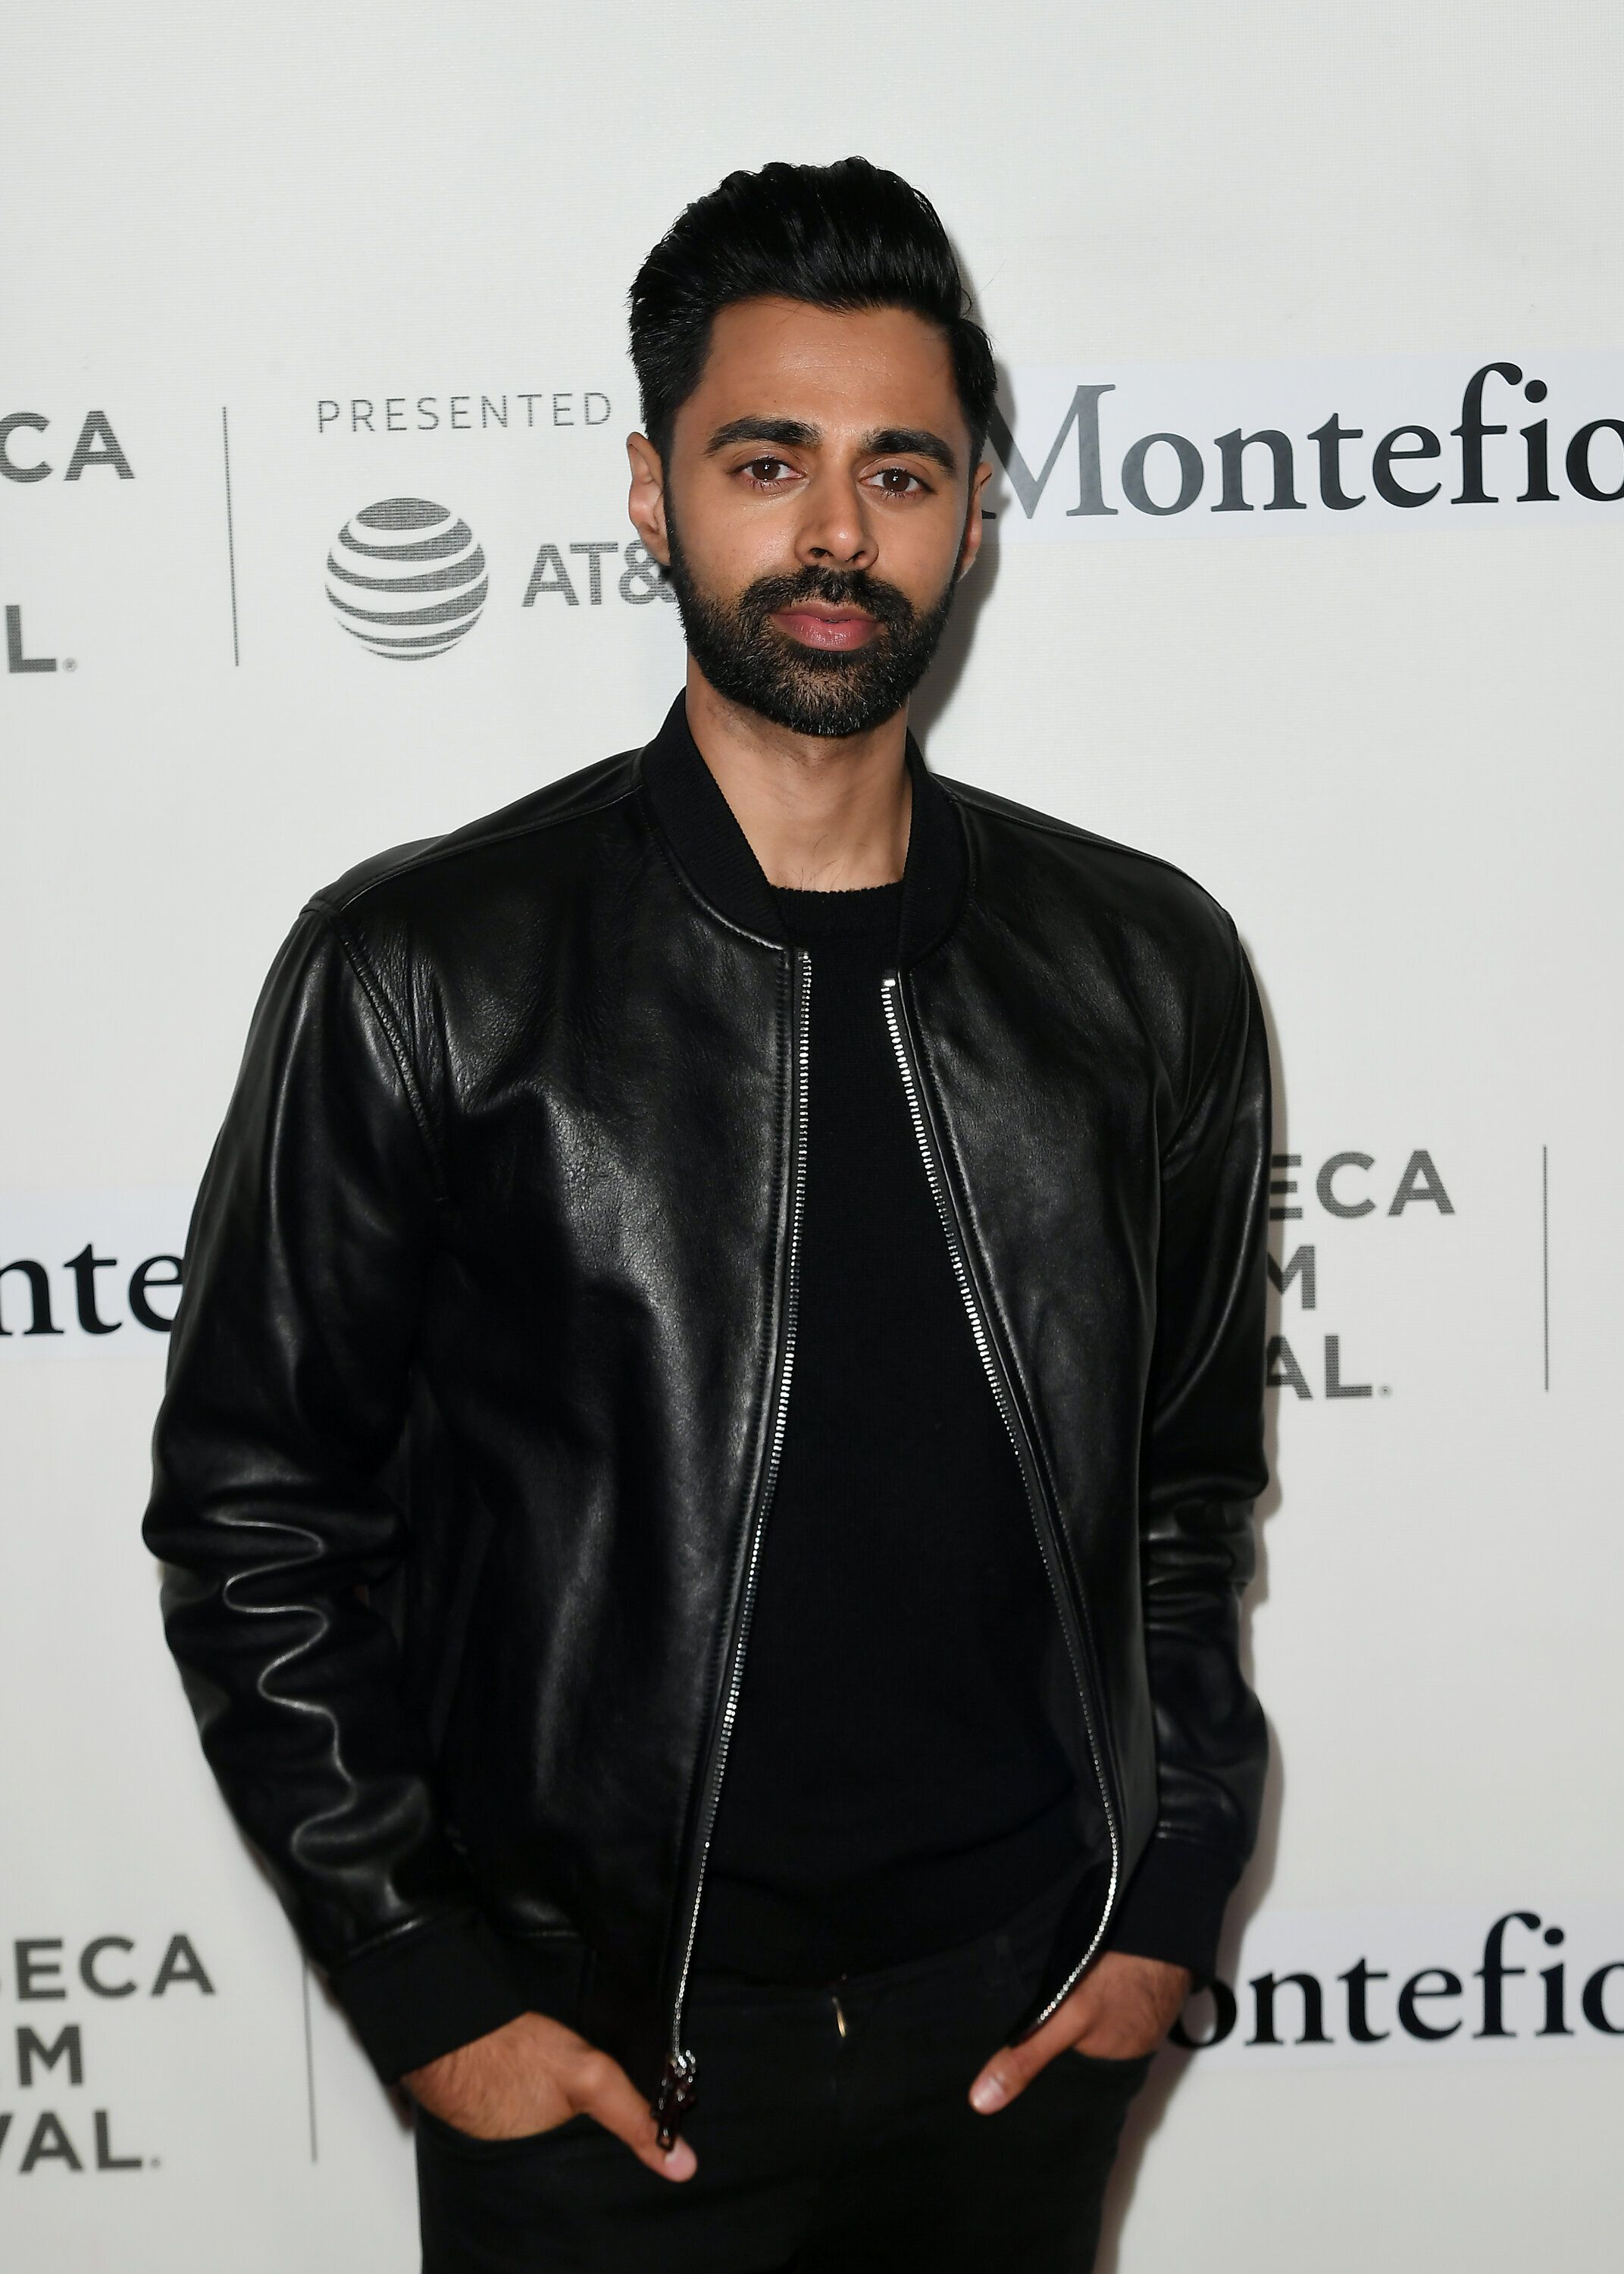 NEW YORK, NEW YORK - MAY 01: Hasan Minhaj attends the Tribeca Talks - Storytellers with Rashida Jones at the 2019 Tribeca Film Festival at BMCC Tribeca PAC on May 01, 2019 in New York City. (Photo by Nicholas Hunt/Getty Images for Tribeca Film Festival)